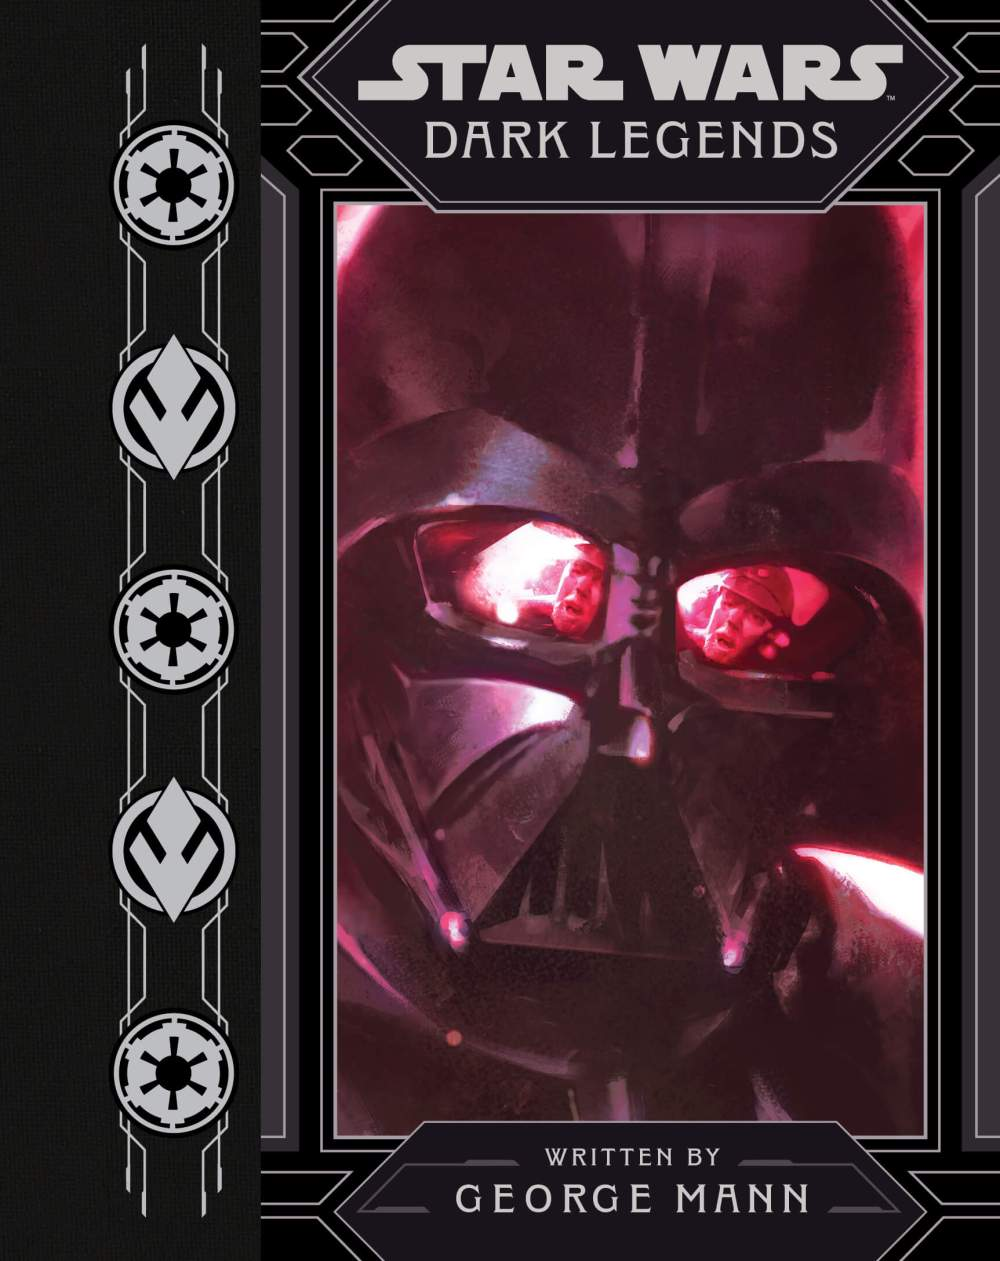 Star Wars: Dark Legends